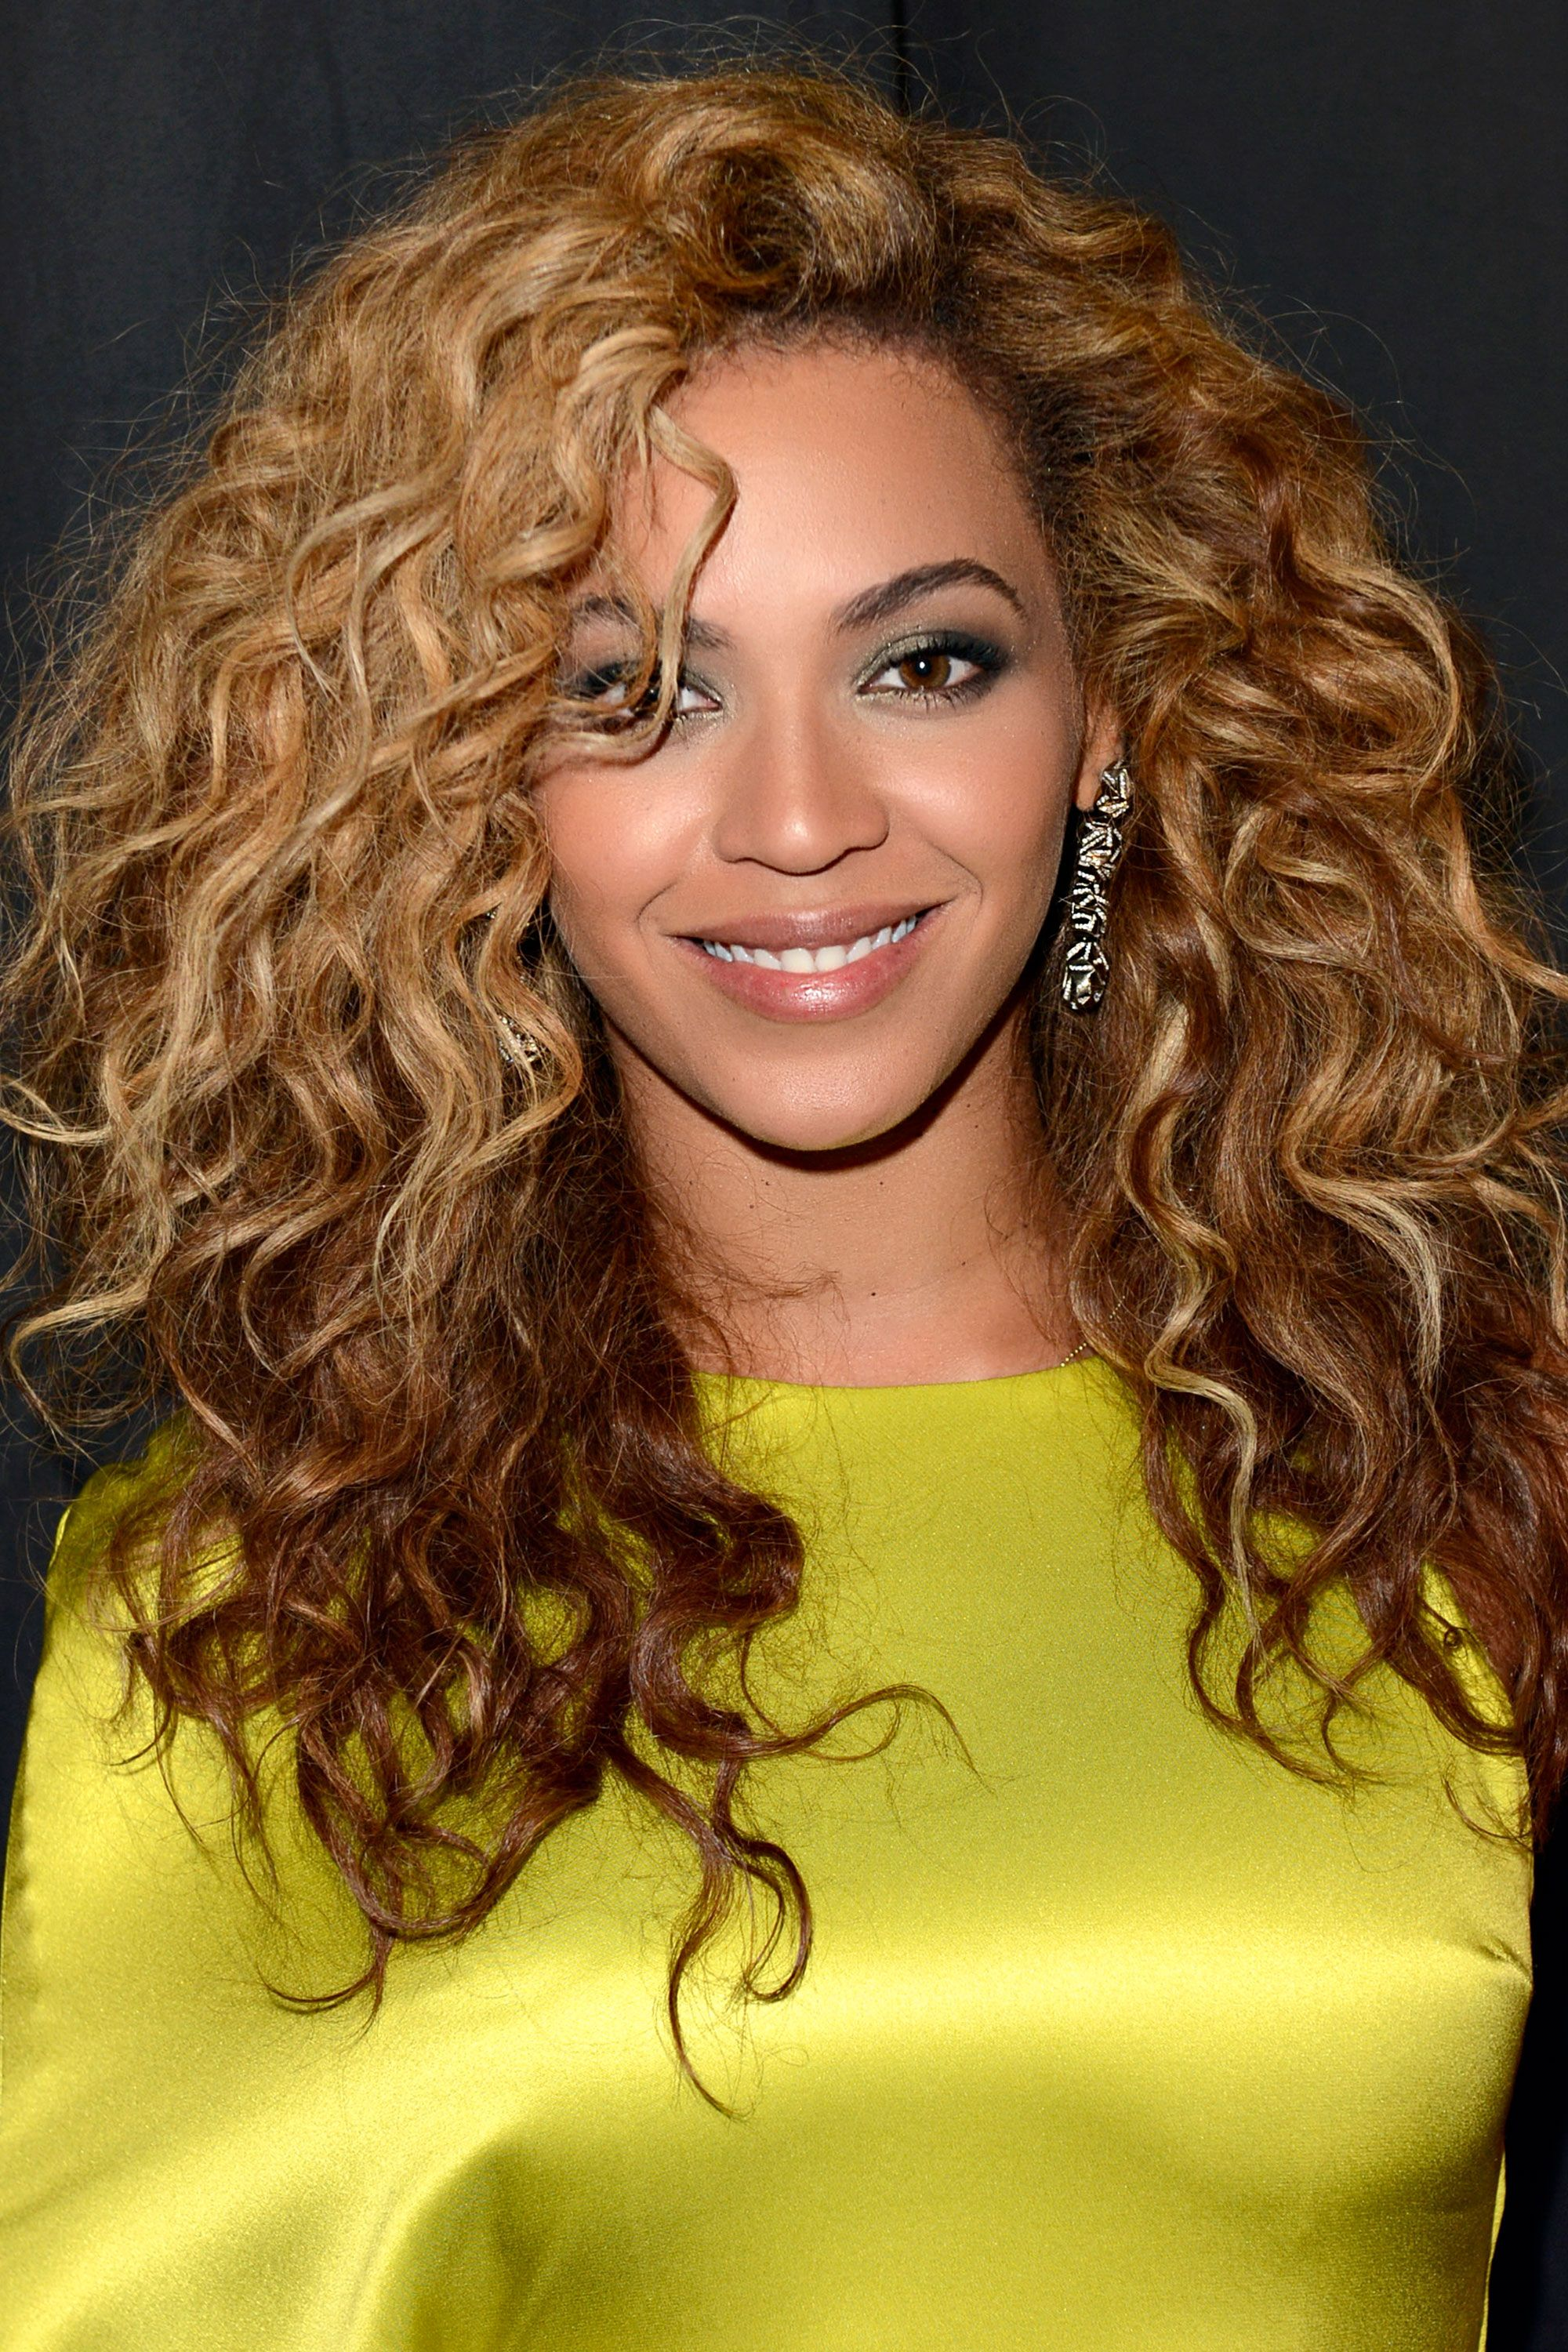 40 beyonce hairstyles beyonces real hair long hair and short 40 beyonce hairstyles beyonces real hair long hair and short hair pictures pmusecretfo Image collections